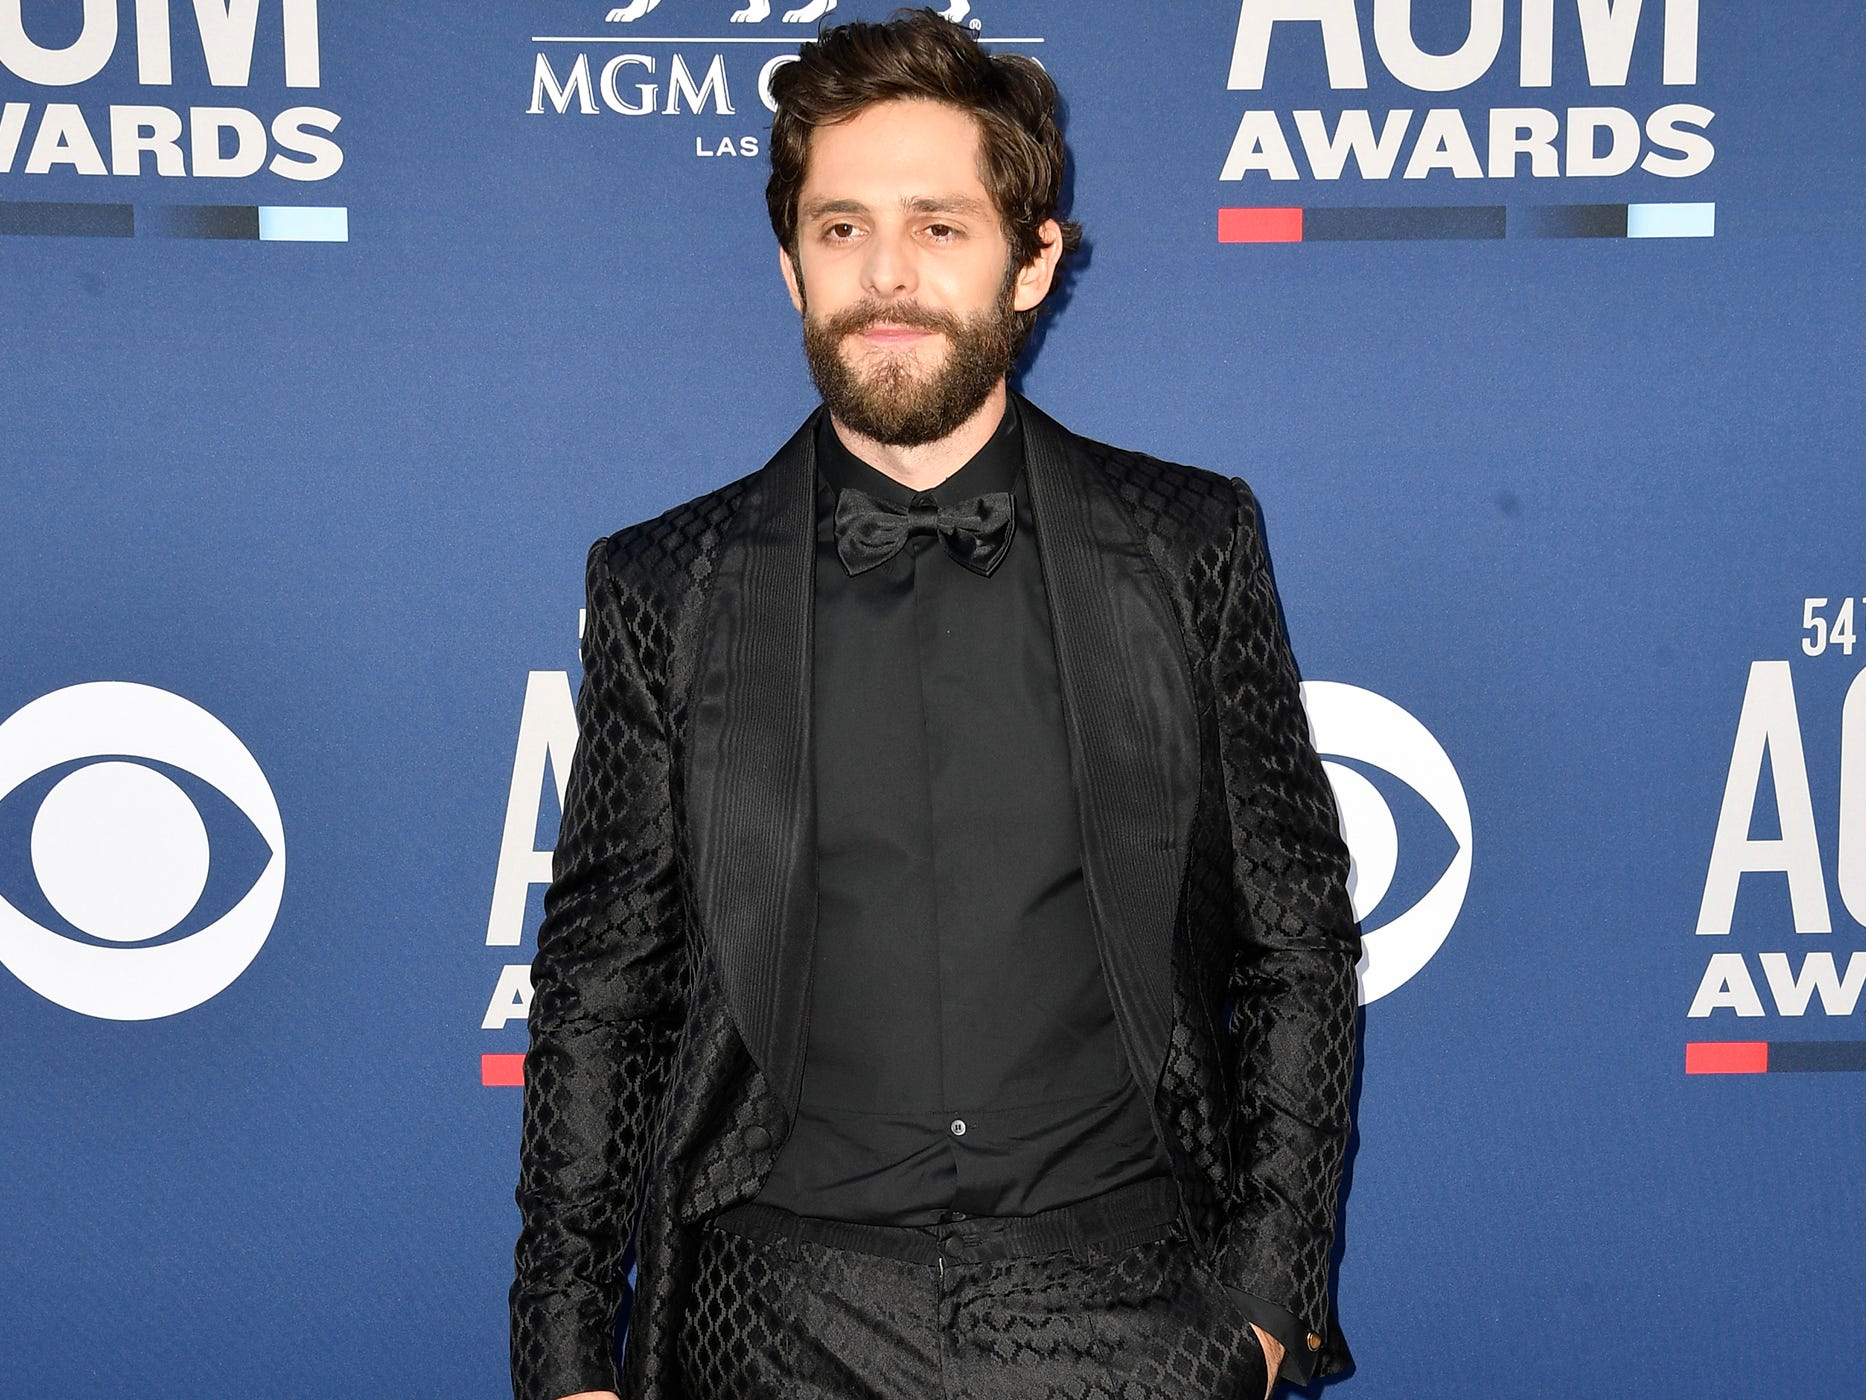 Thomas Rhett walks the red carpet at the 54TH Academy of Country Music Awards Sunday, April 7, 2019, in Las Vegas, Nev.